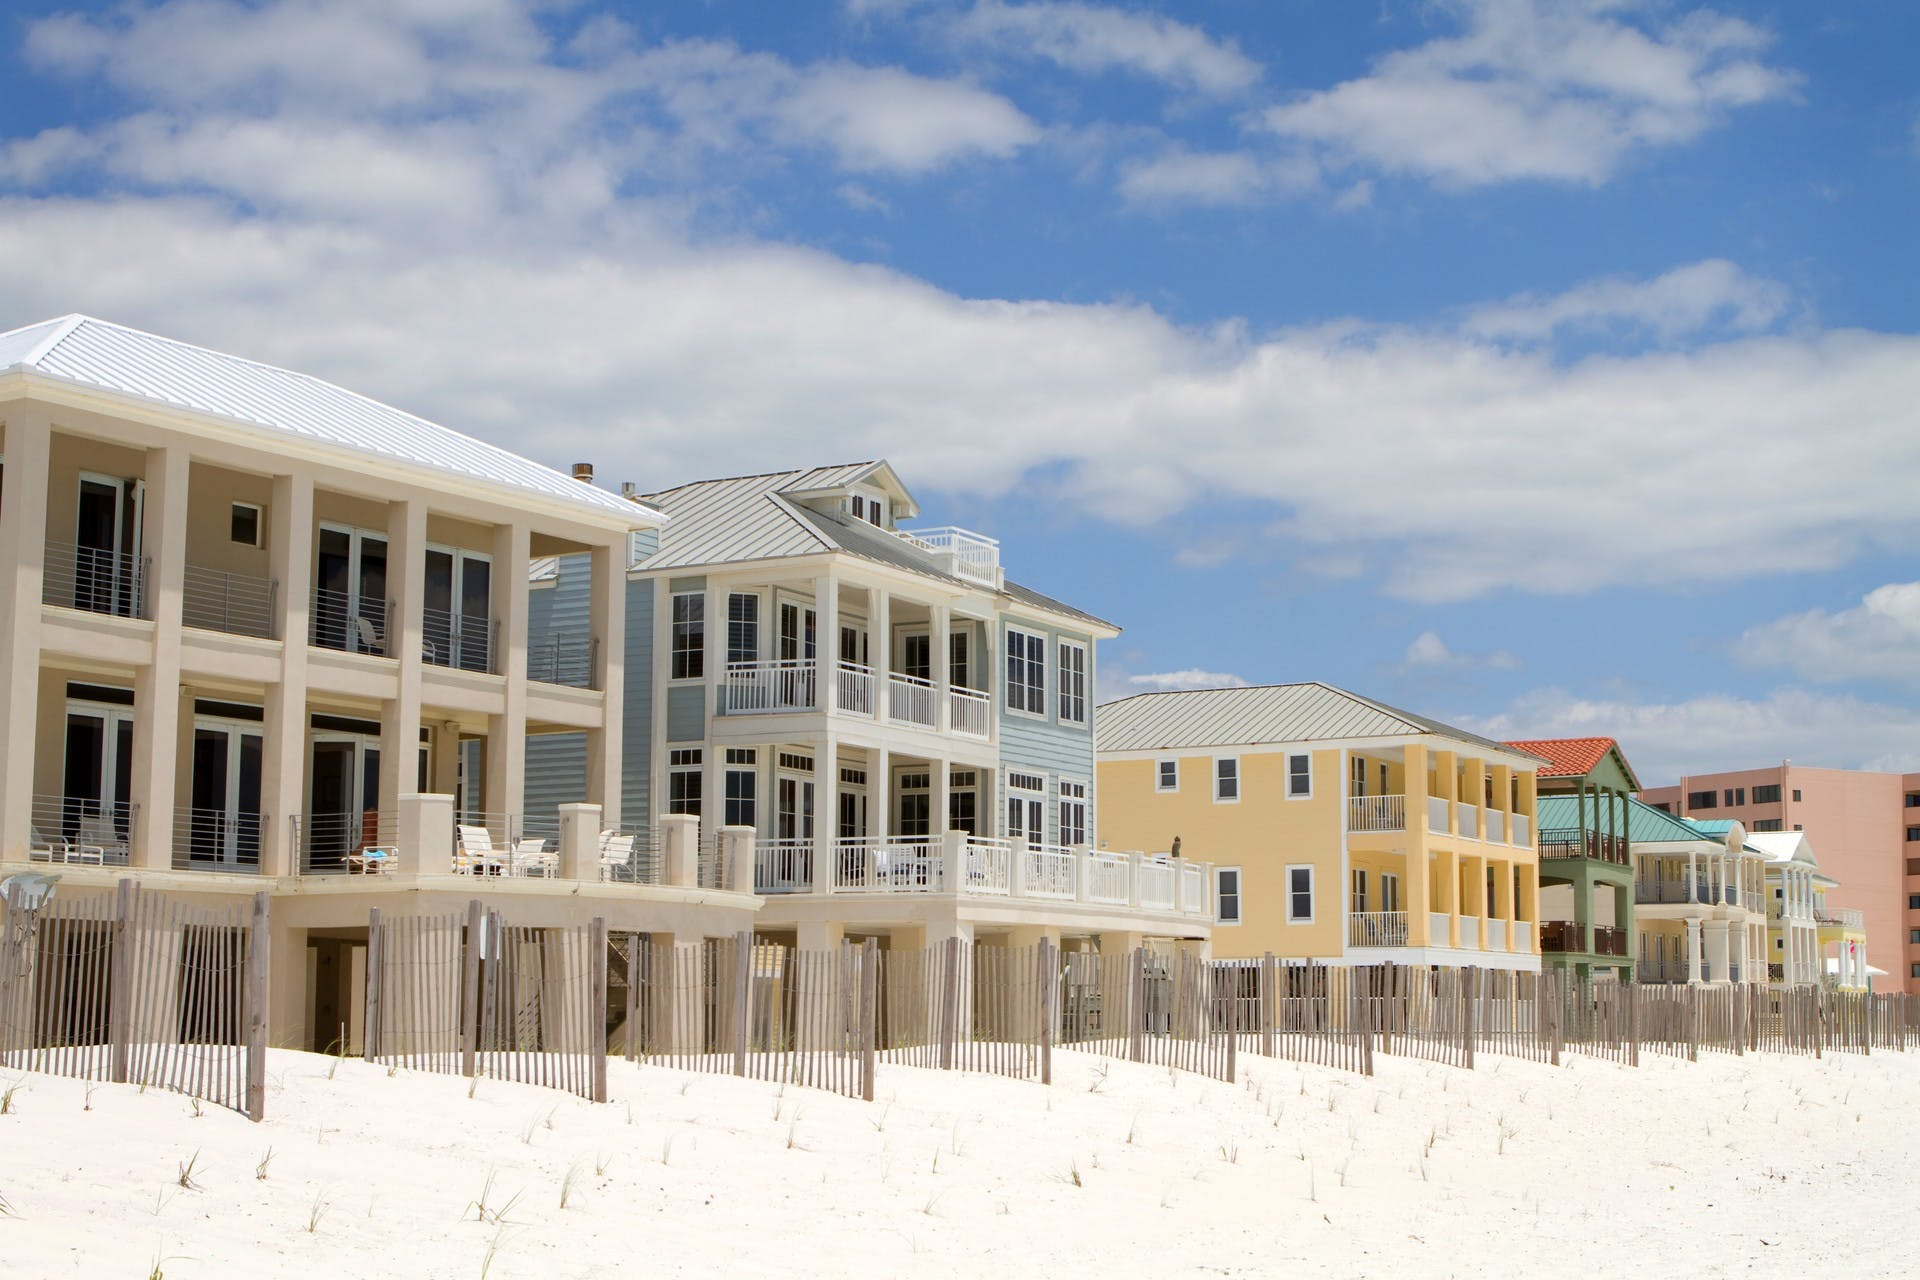 Vacation rentals located in Destin, FL